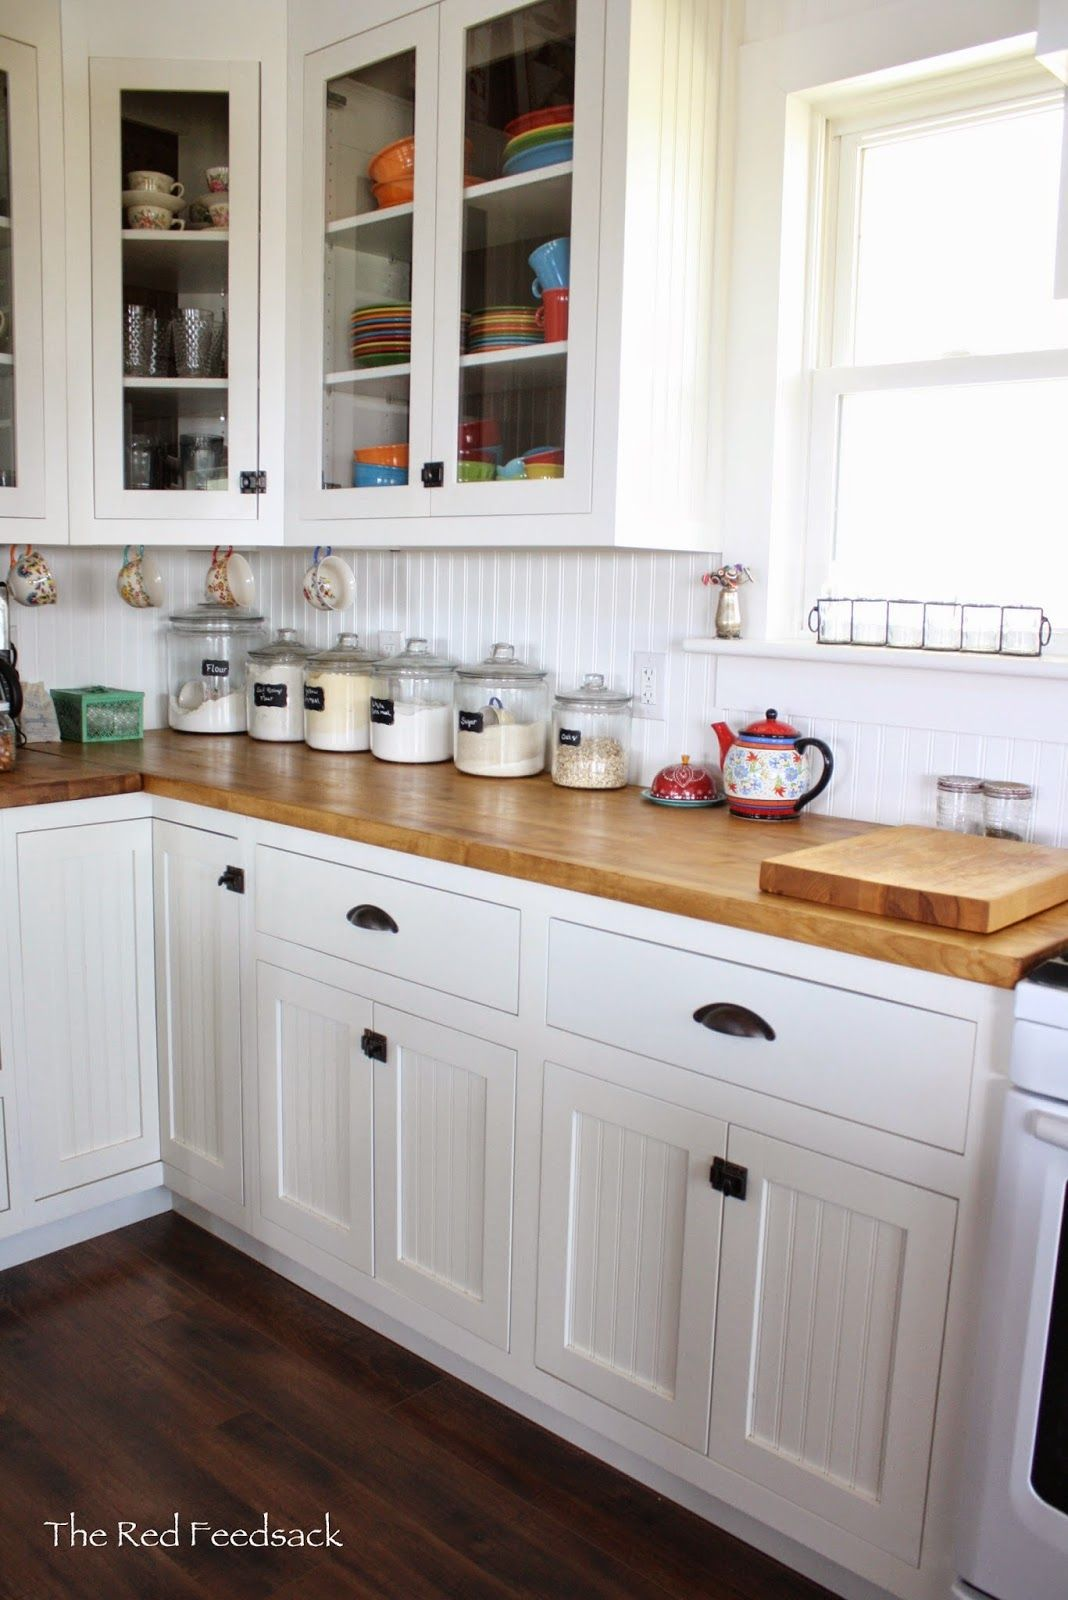 The Red Feedsack: Update On Butcher Block Countertops! Ikea Birch Treated  With Dark Tung